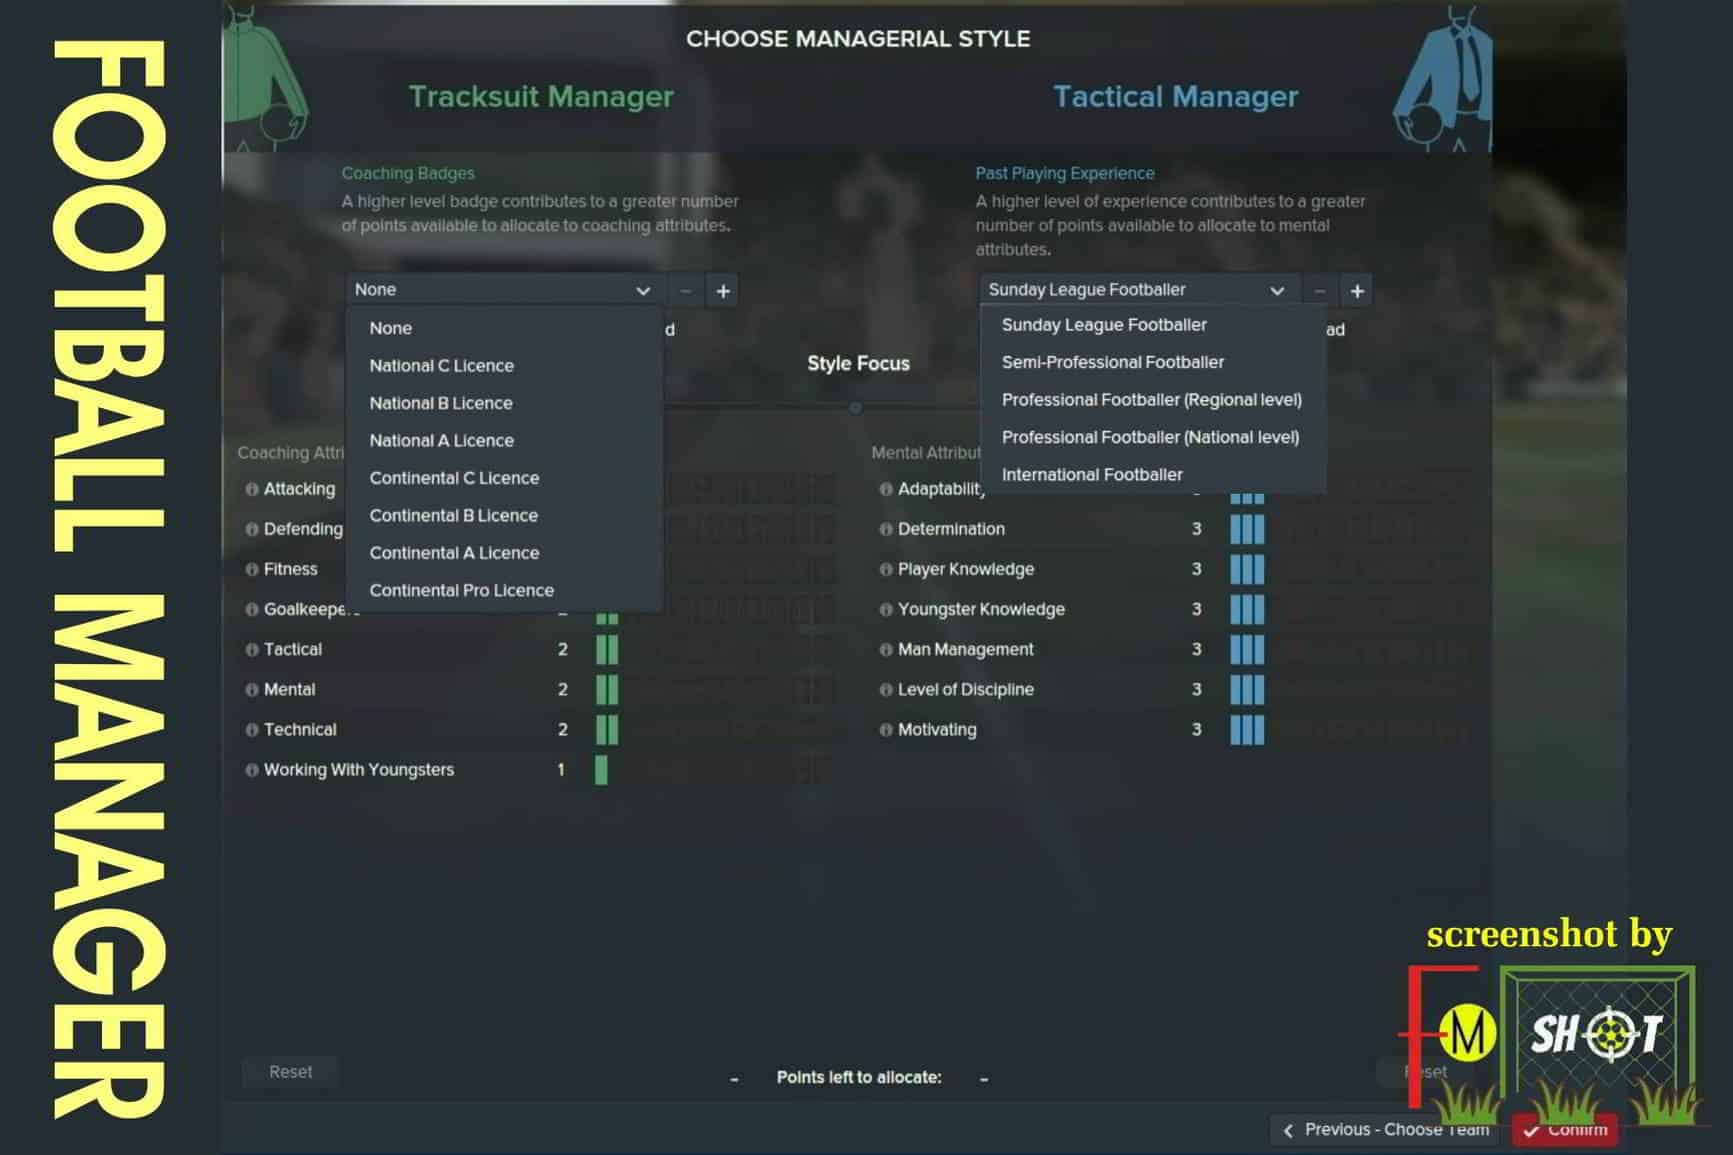 A7 - Managerial Style